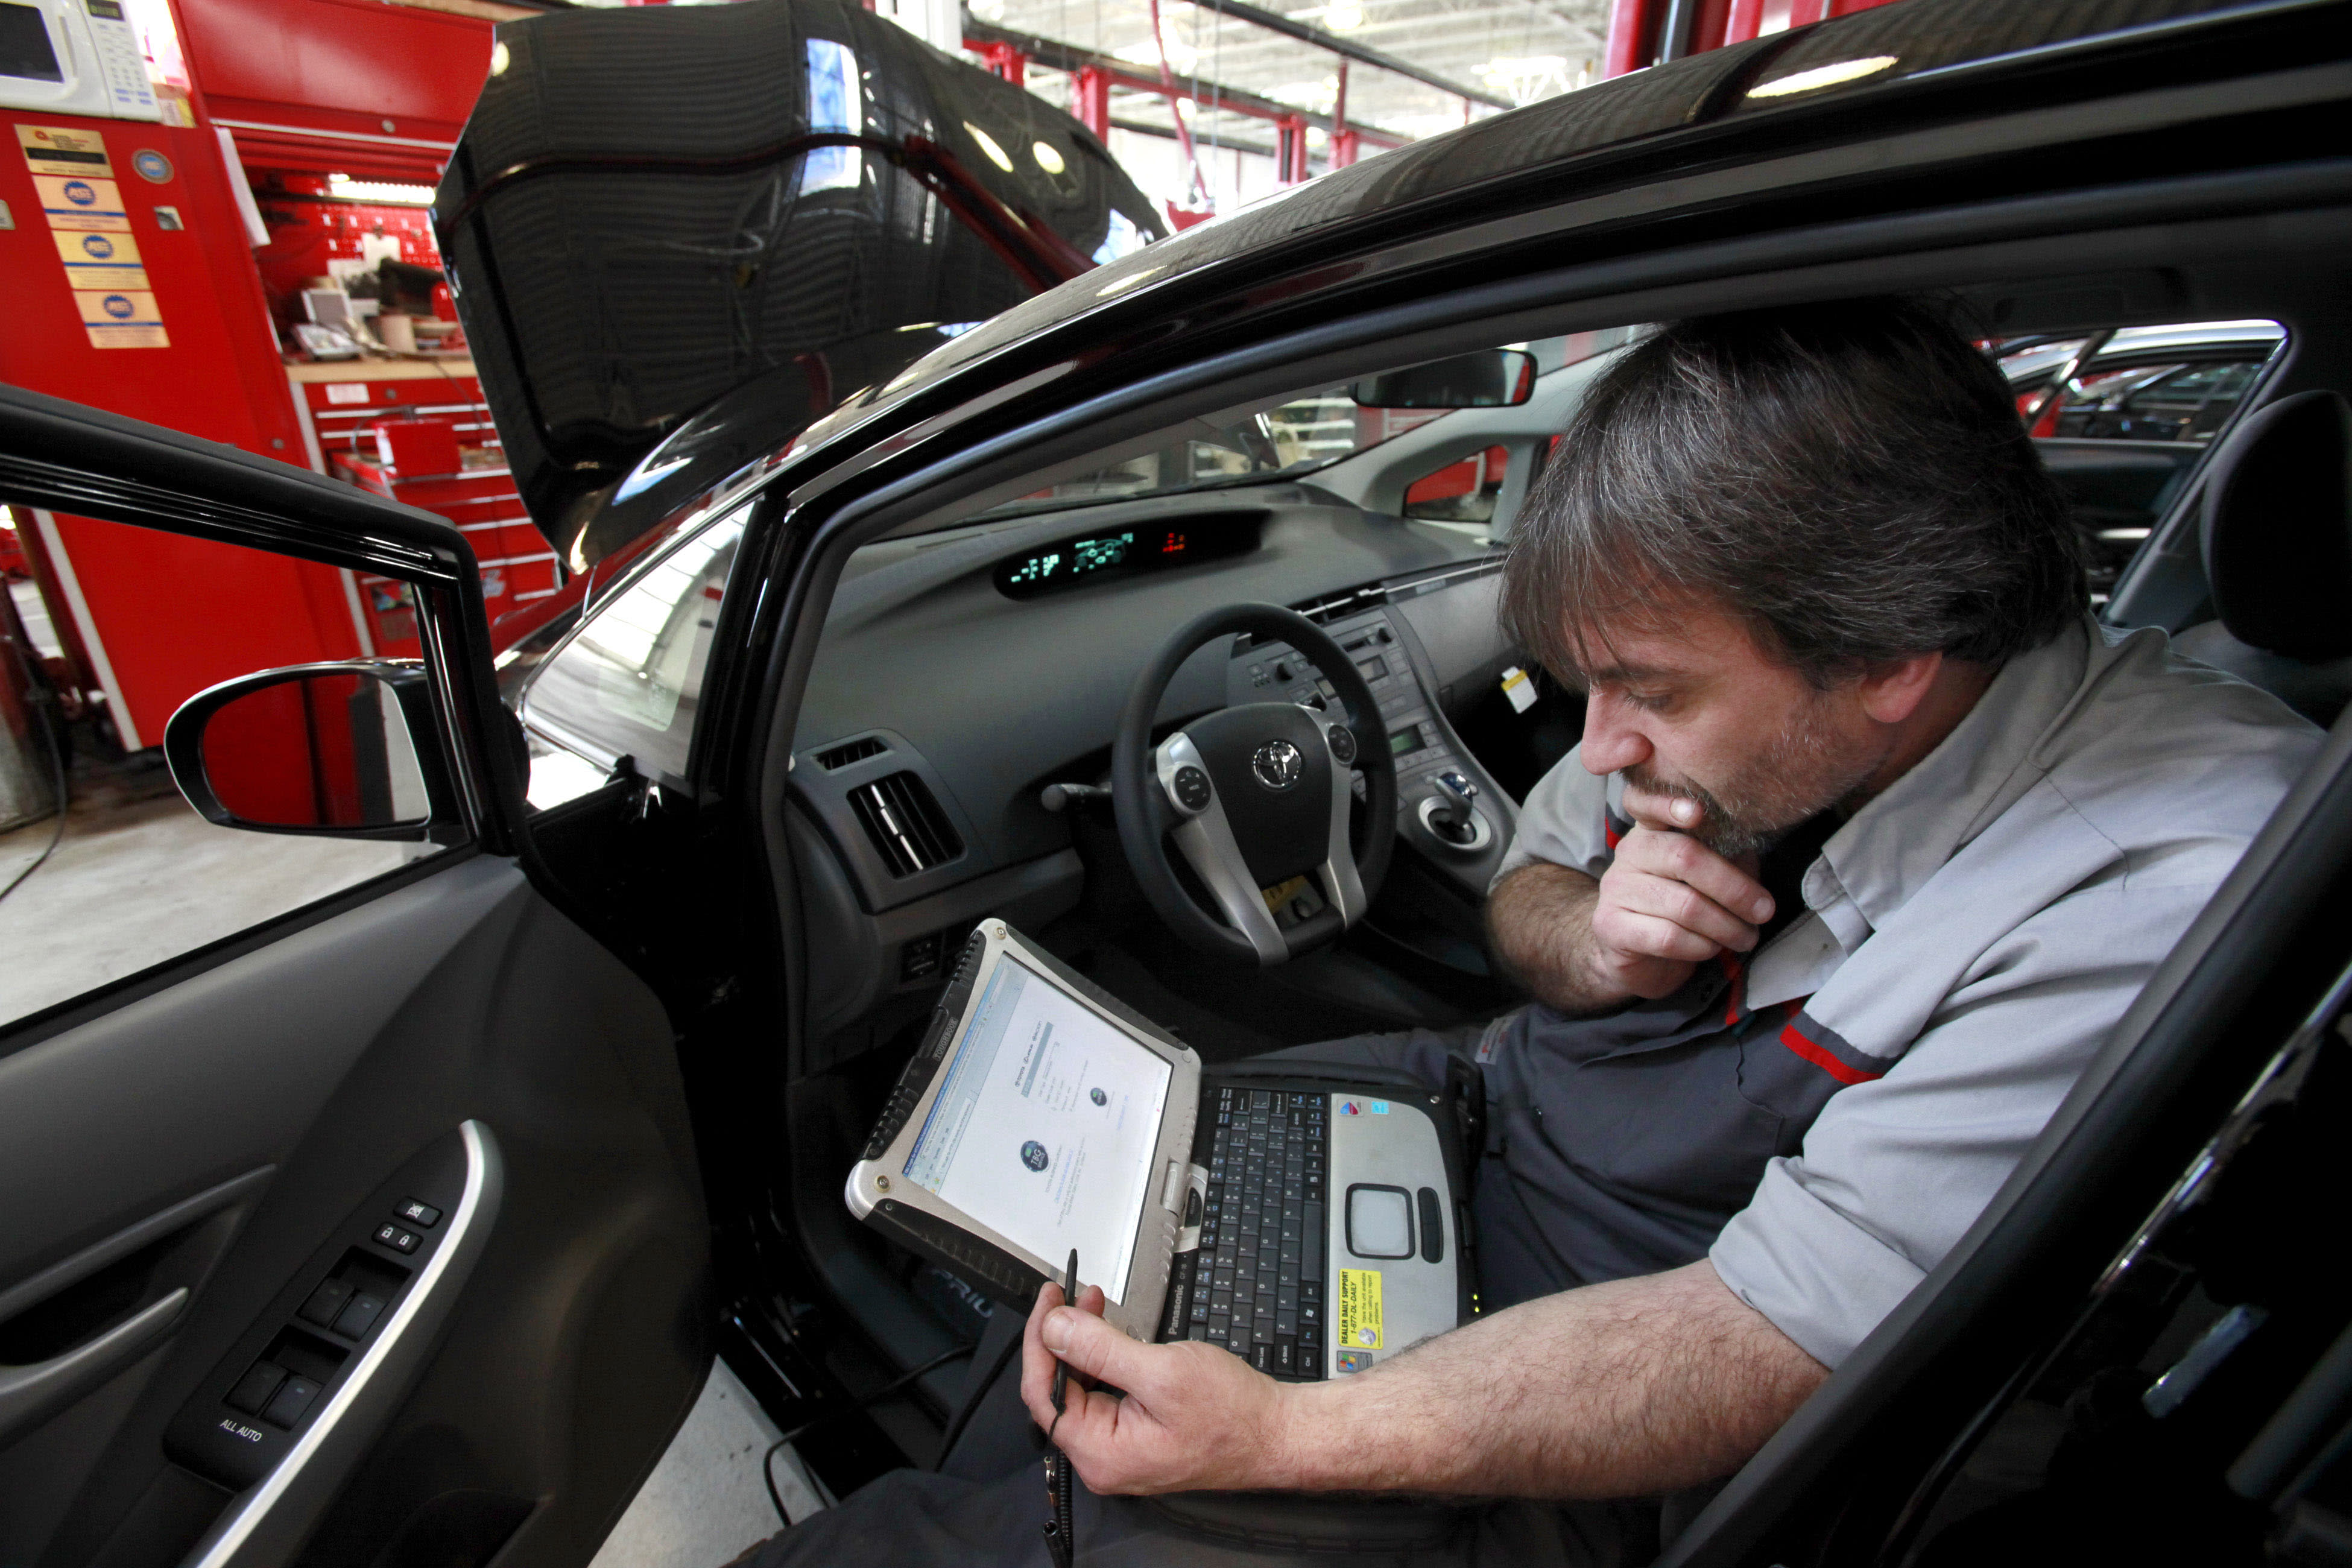 Car Pcm: Hackers Find Weaknesses In Car Computer Systems